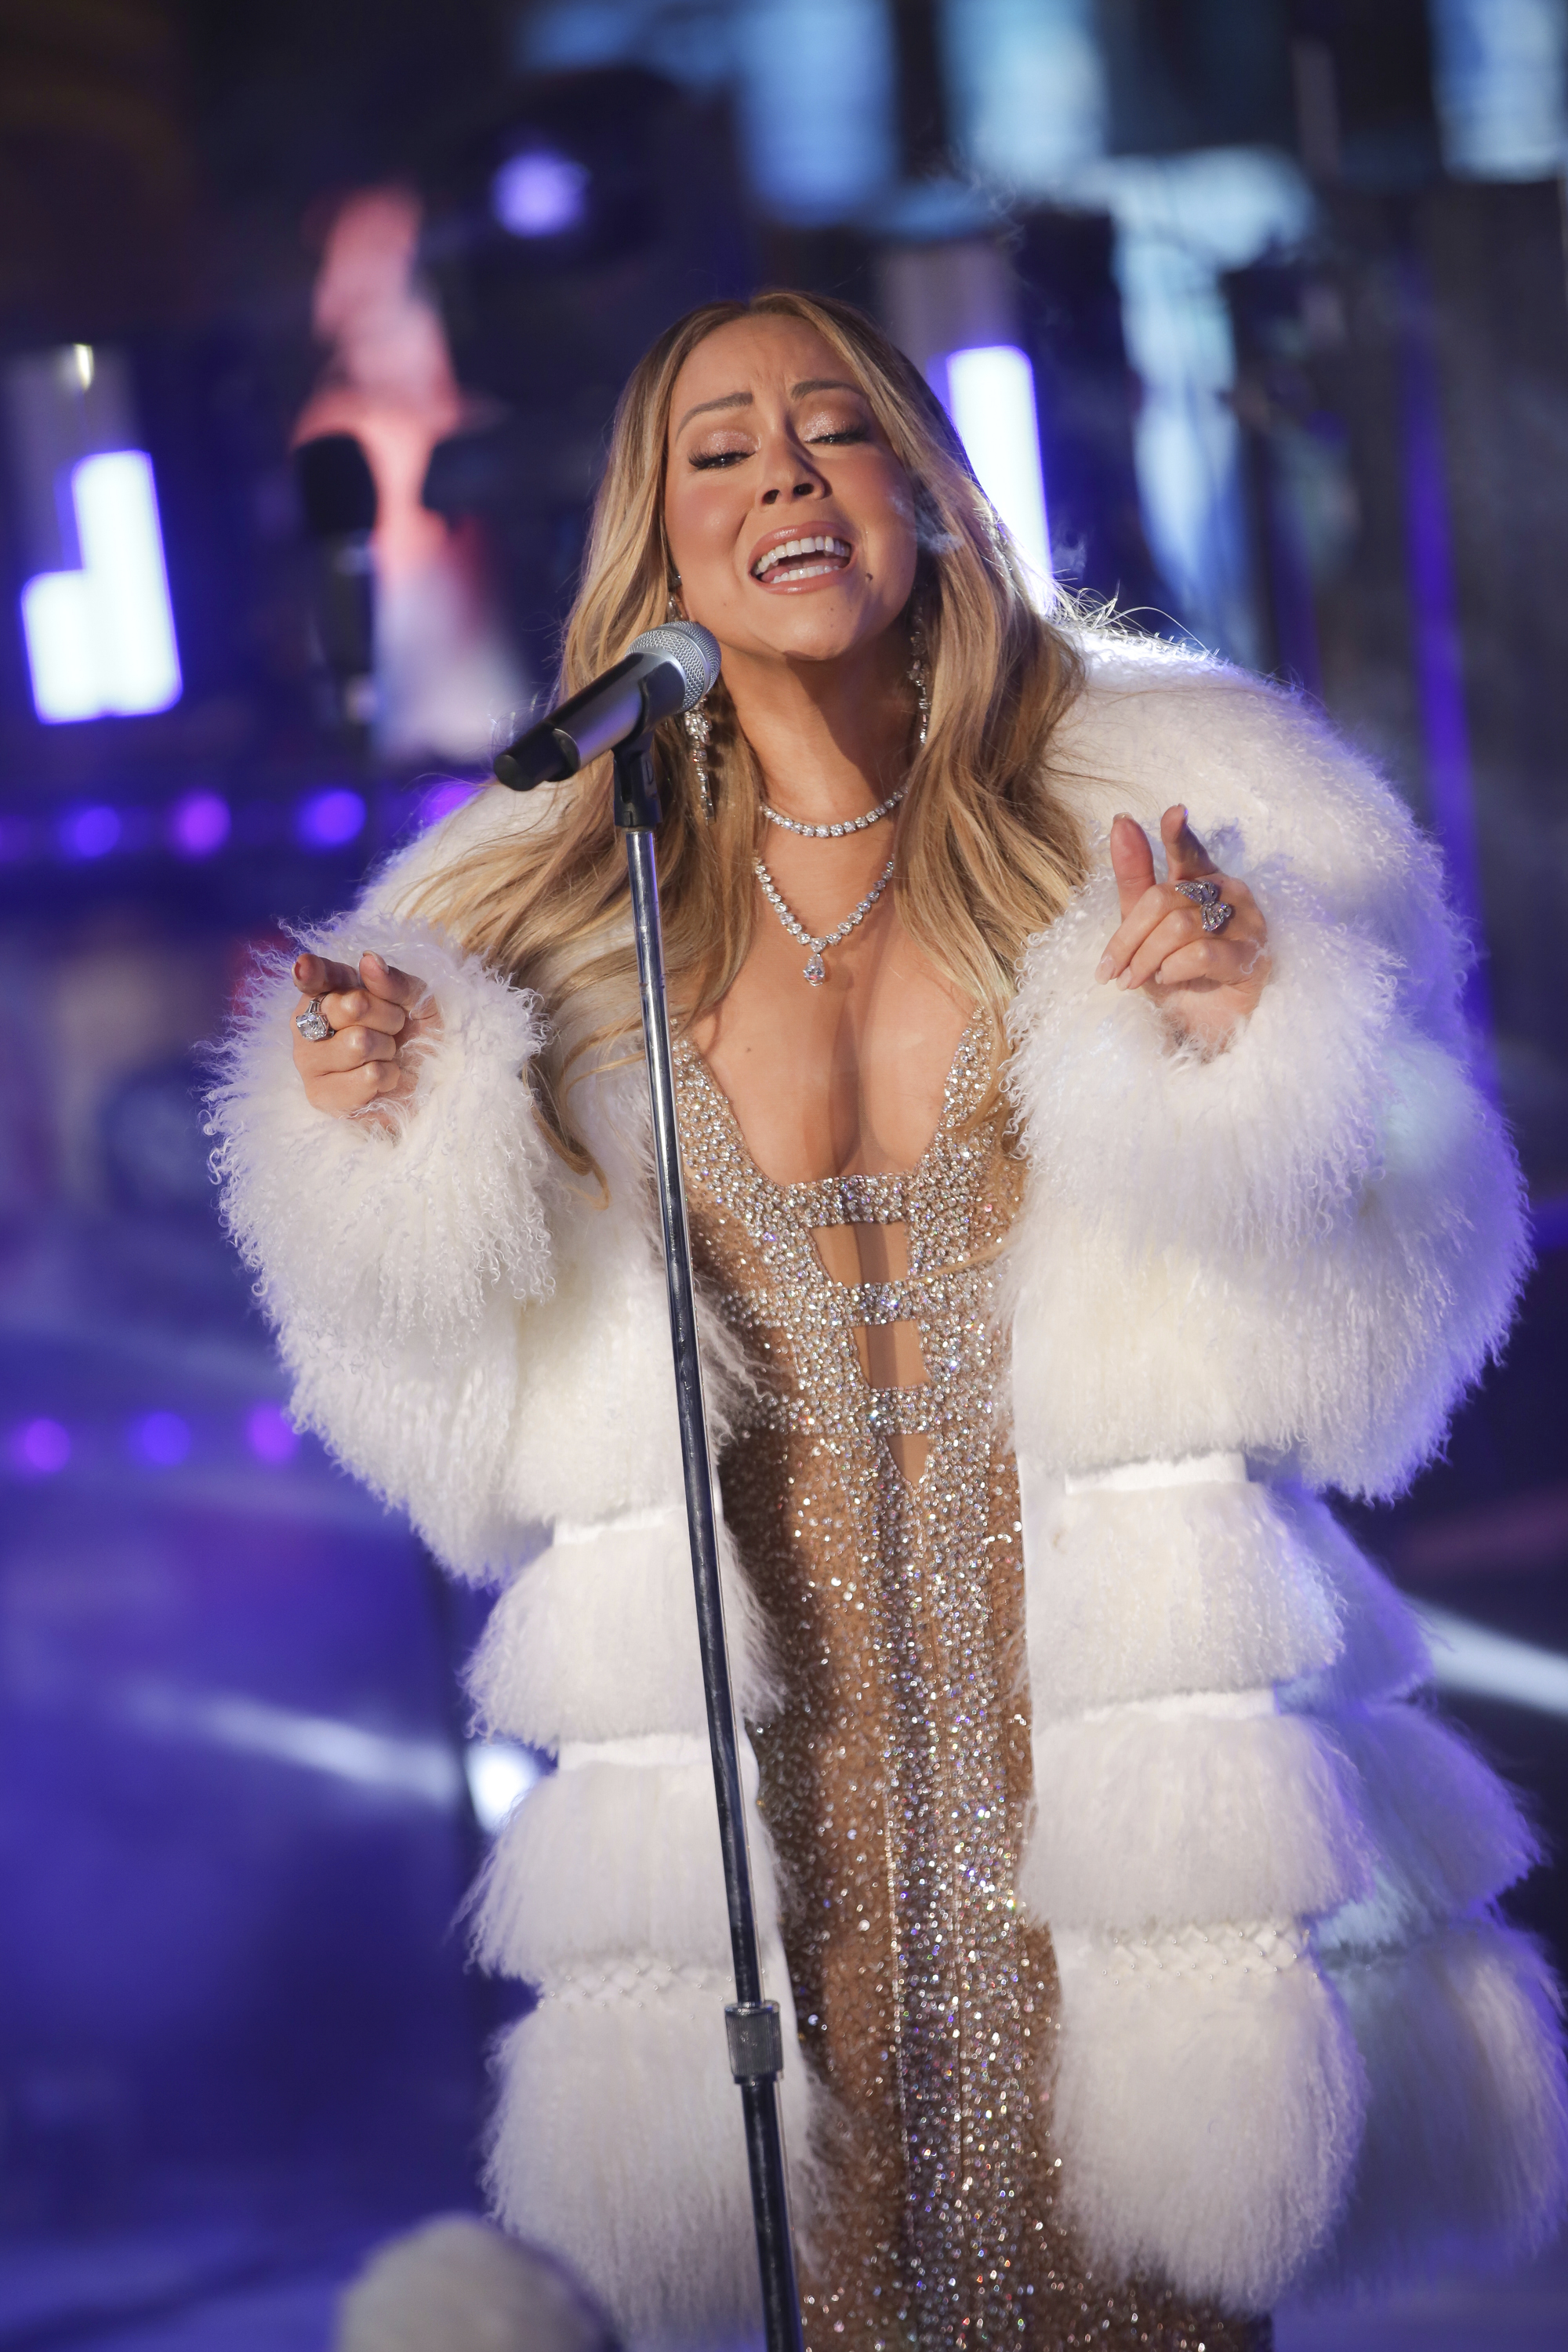 "<div class=""meta image-caption""><div class=""origin-logo origin-image ap""><span>AP</span></div><span class=""caption-text"">Mariah Carey performs on stage at the New Year's Eve celebration in Times Square on Sunday, Dec. 31, 2017, in New York. (Photo by Brent N. Clarke/Invision/AP) (Brent N. Clarke/Invision/AP)</span></div>"